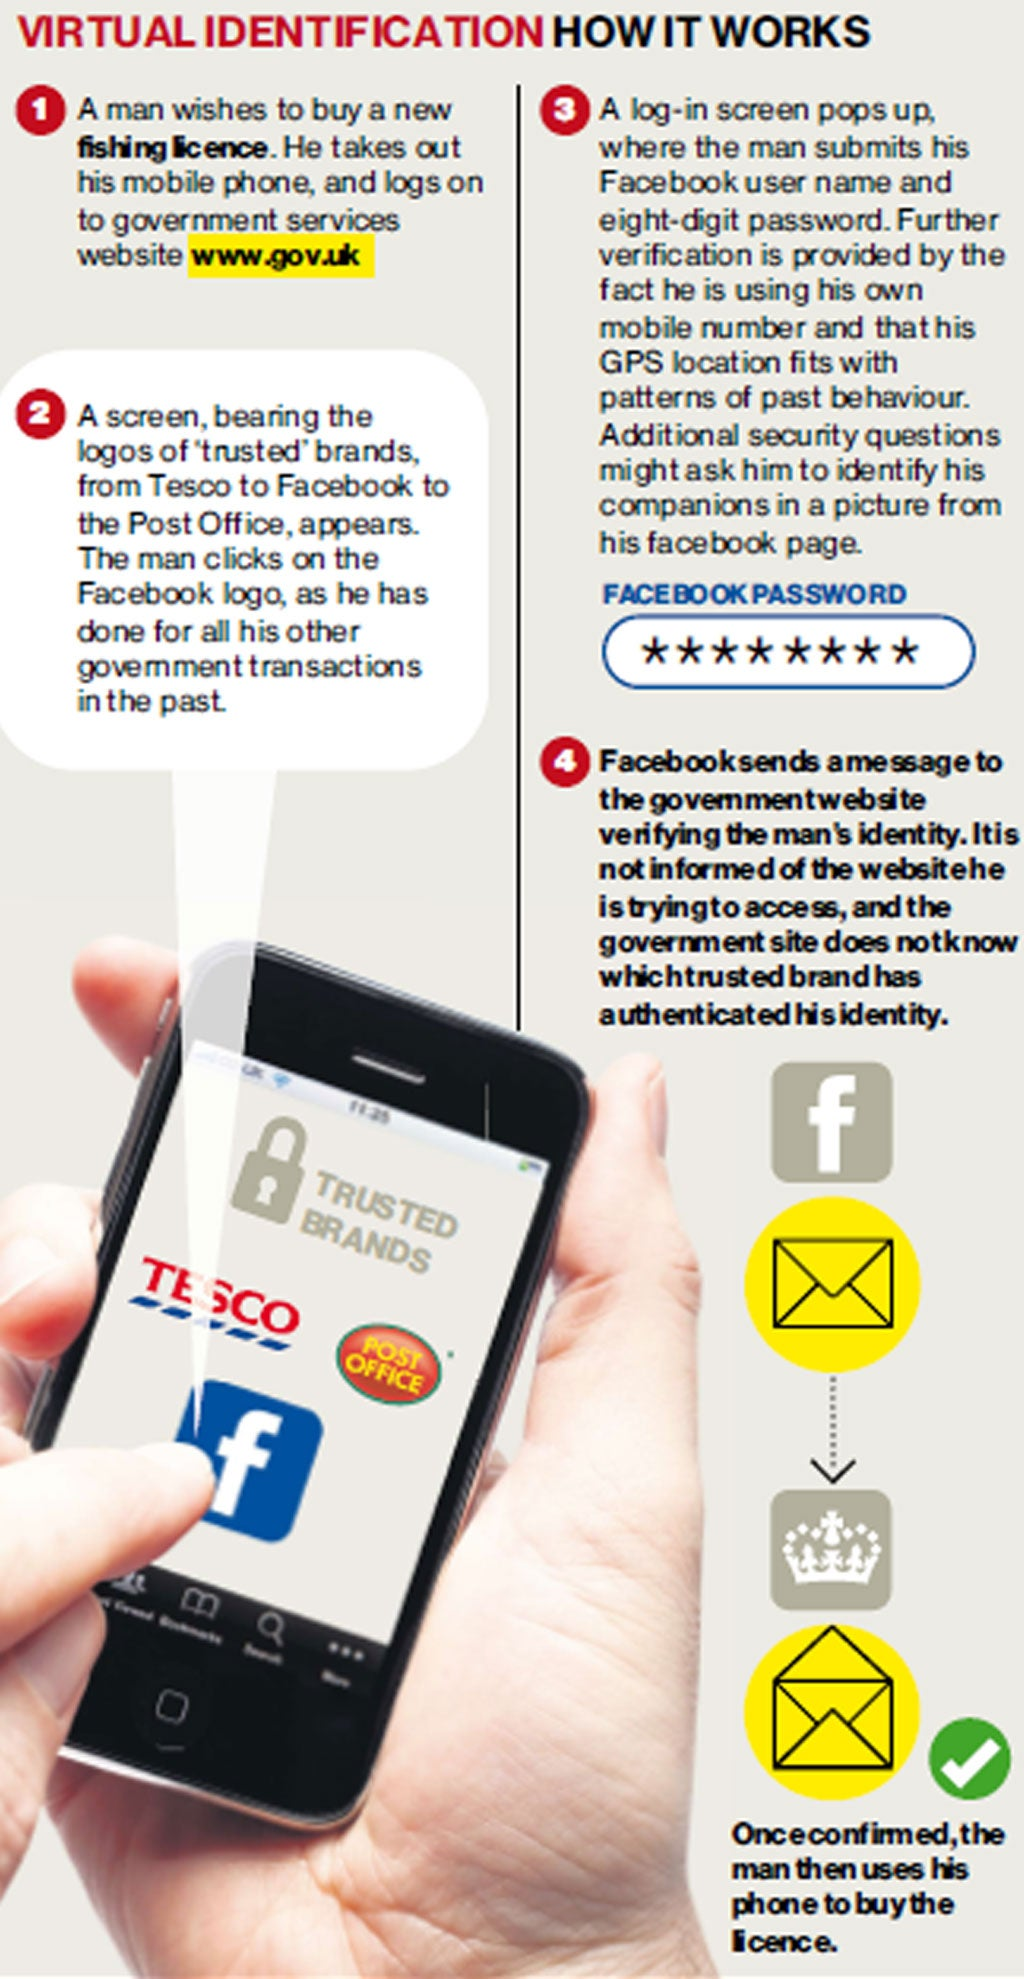 National 'virtual ID card' scheme set for launch (Is there